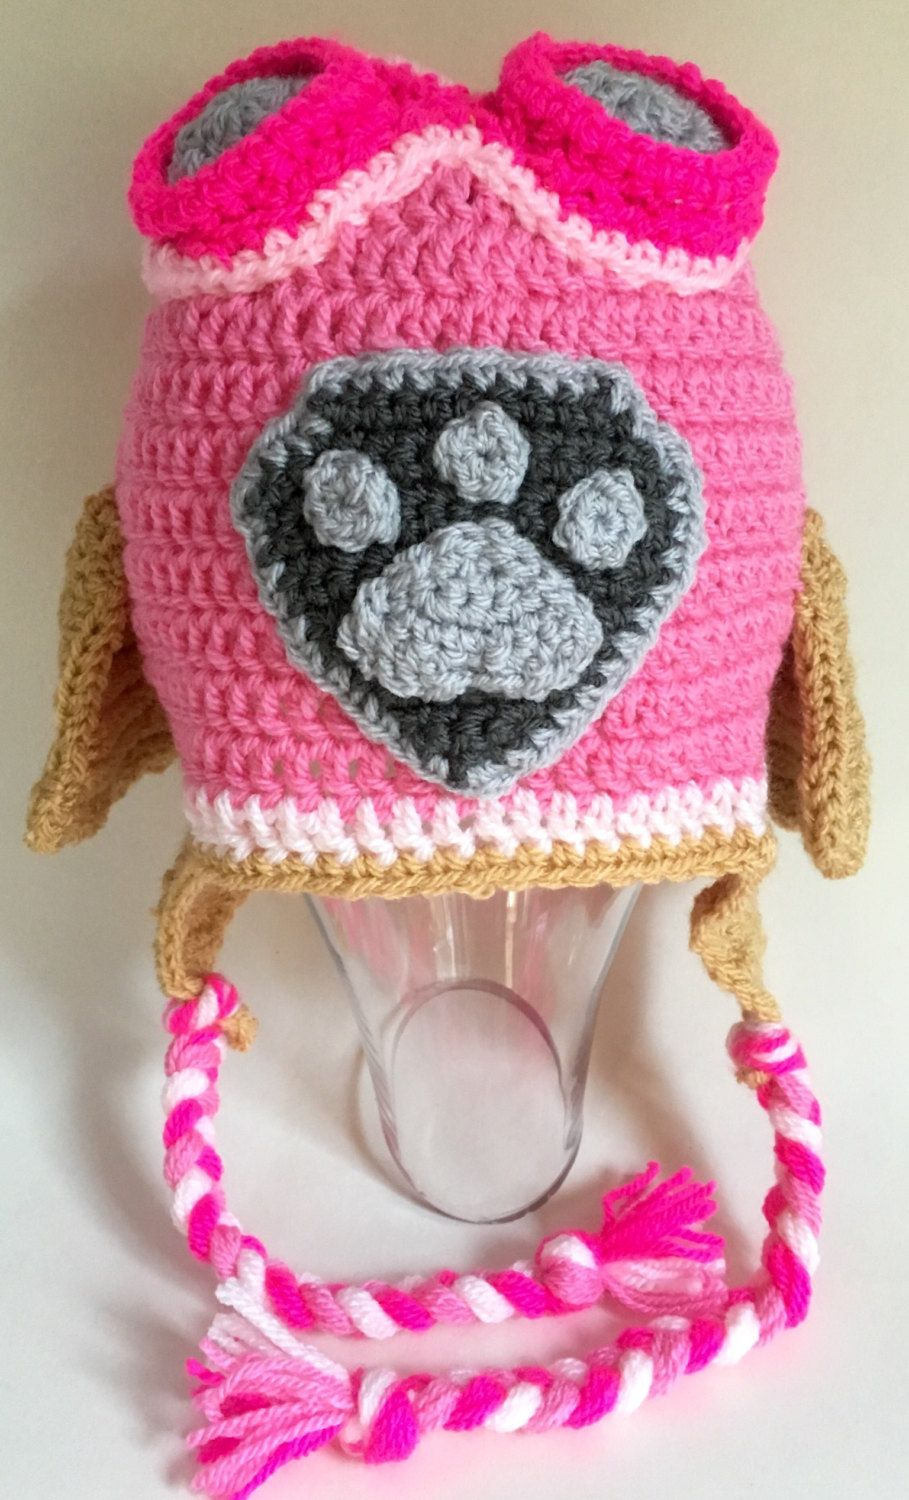 Paw Patrol Inspired crochet hat  SKYE  by Cocorach on Etsy  ea3199abcd3